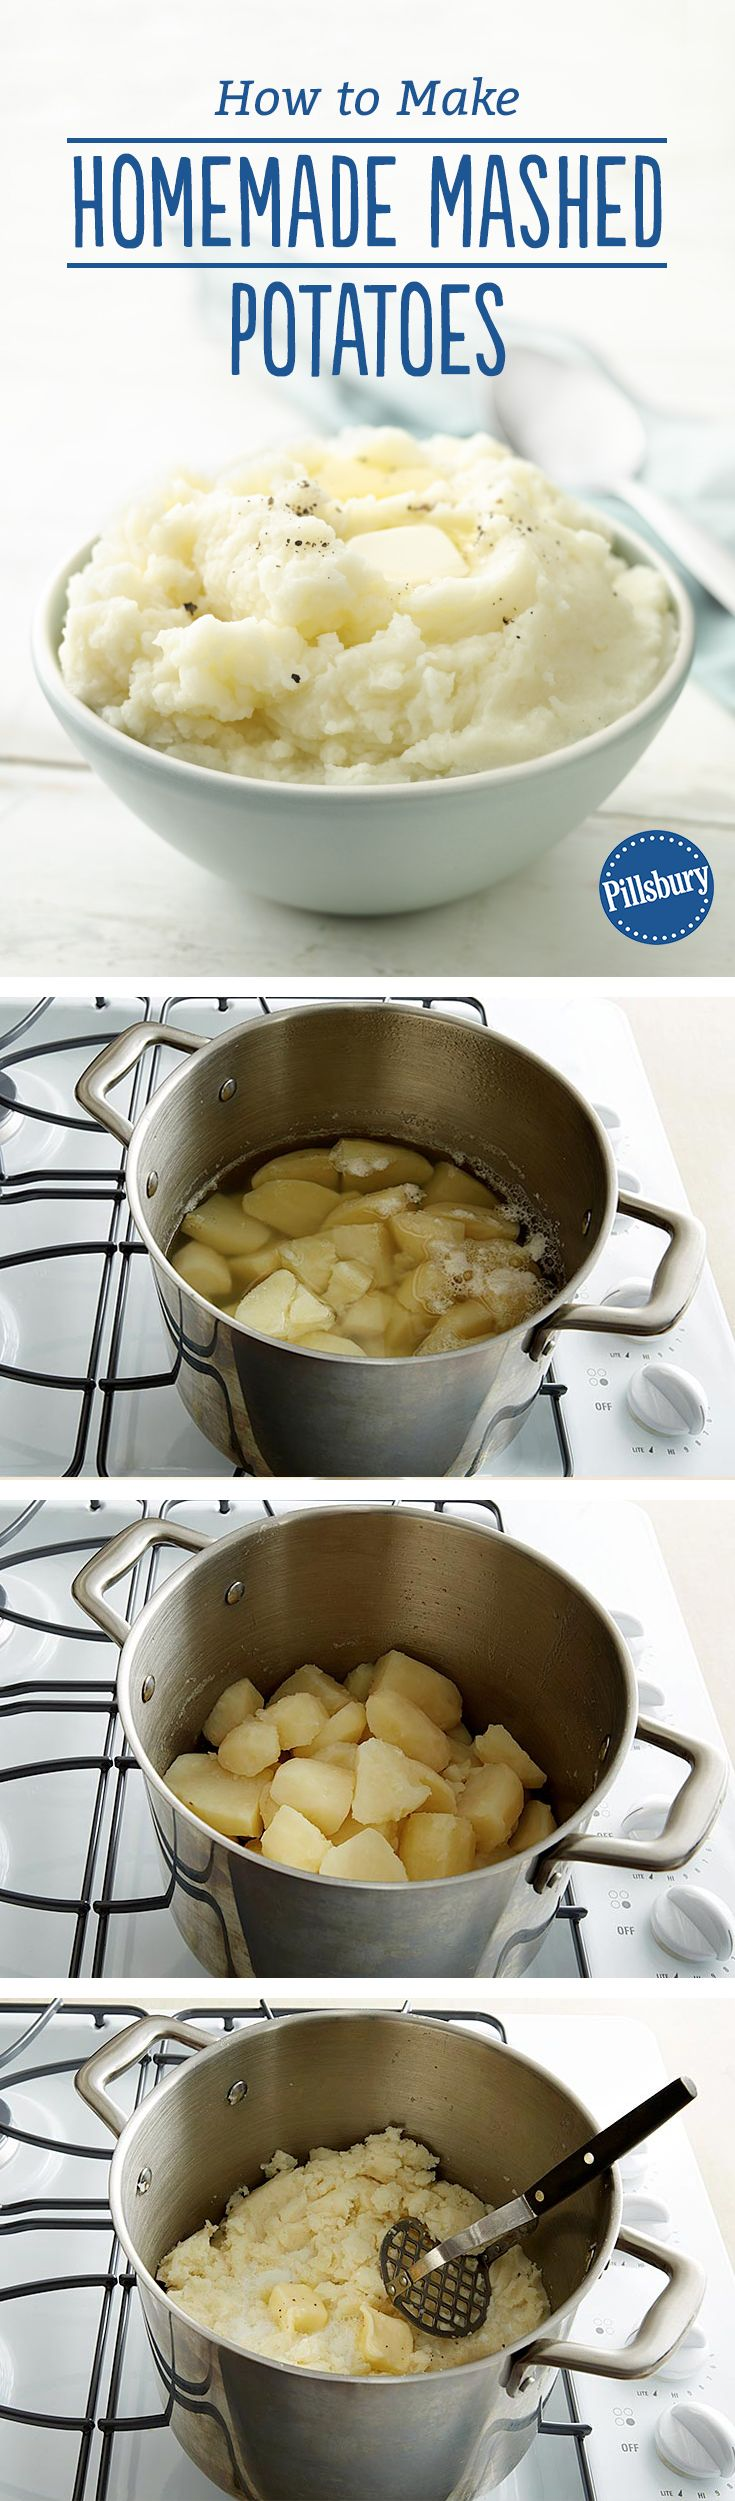 How to Make Homemade Mashed Potatoes: Everything you ever wanted to know about taters.